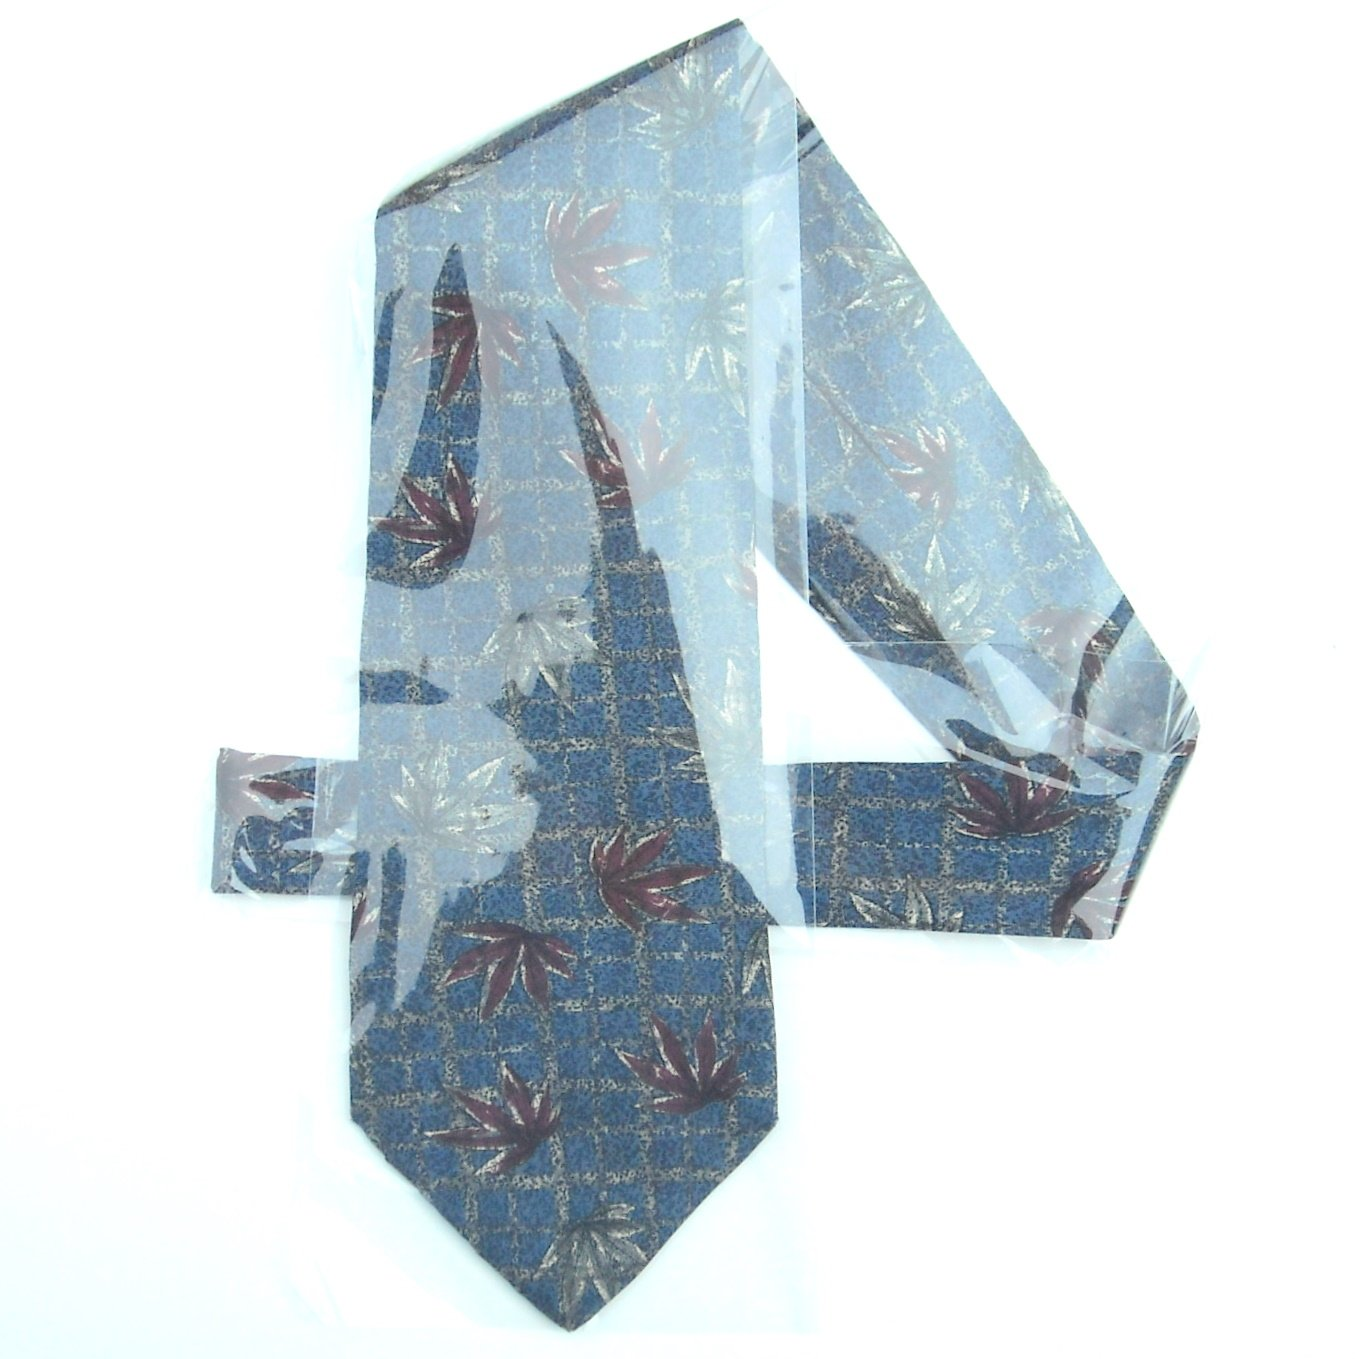 417 Van Heusen Blue Marijuana Cannabis Leaves mens silk necktie tie